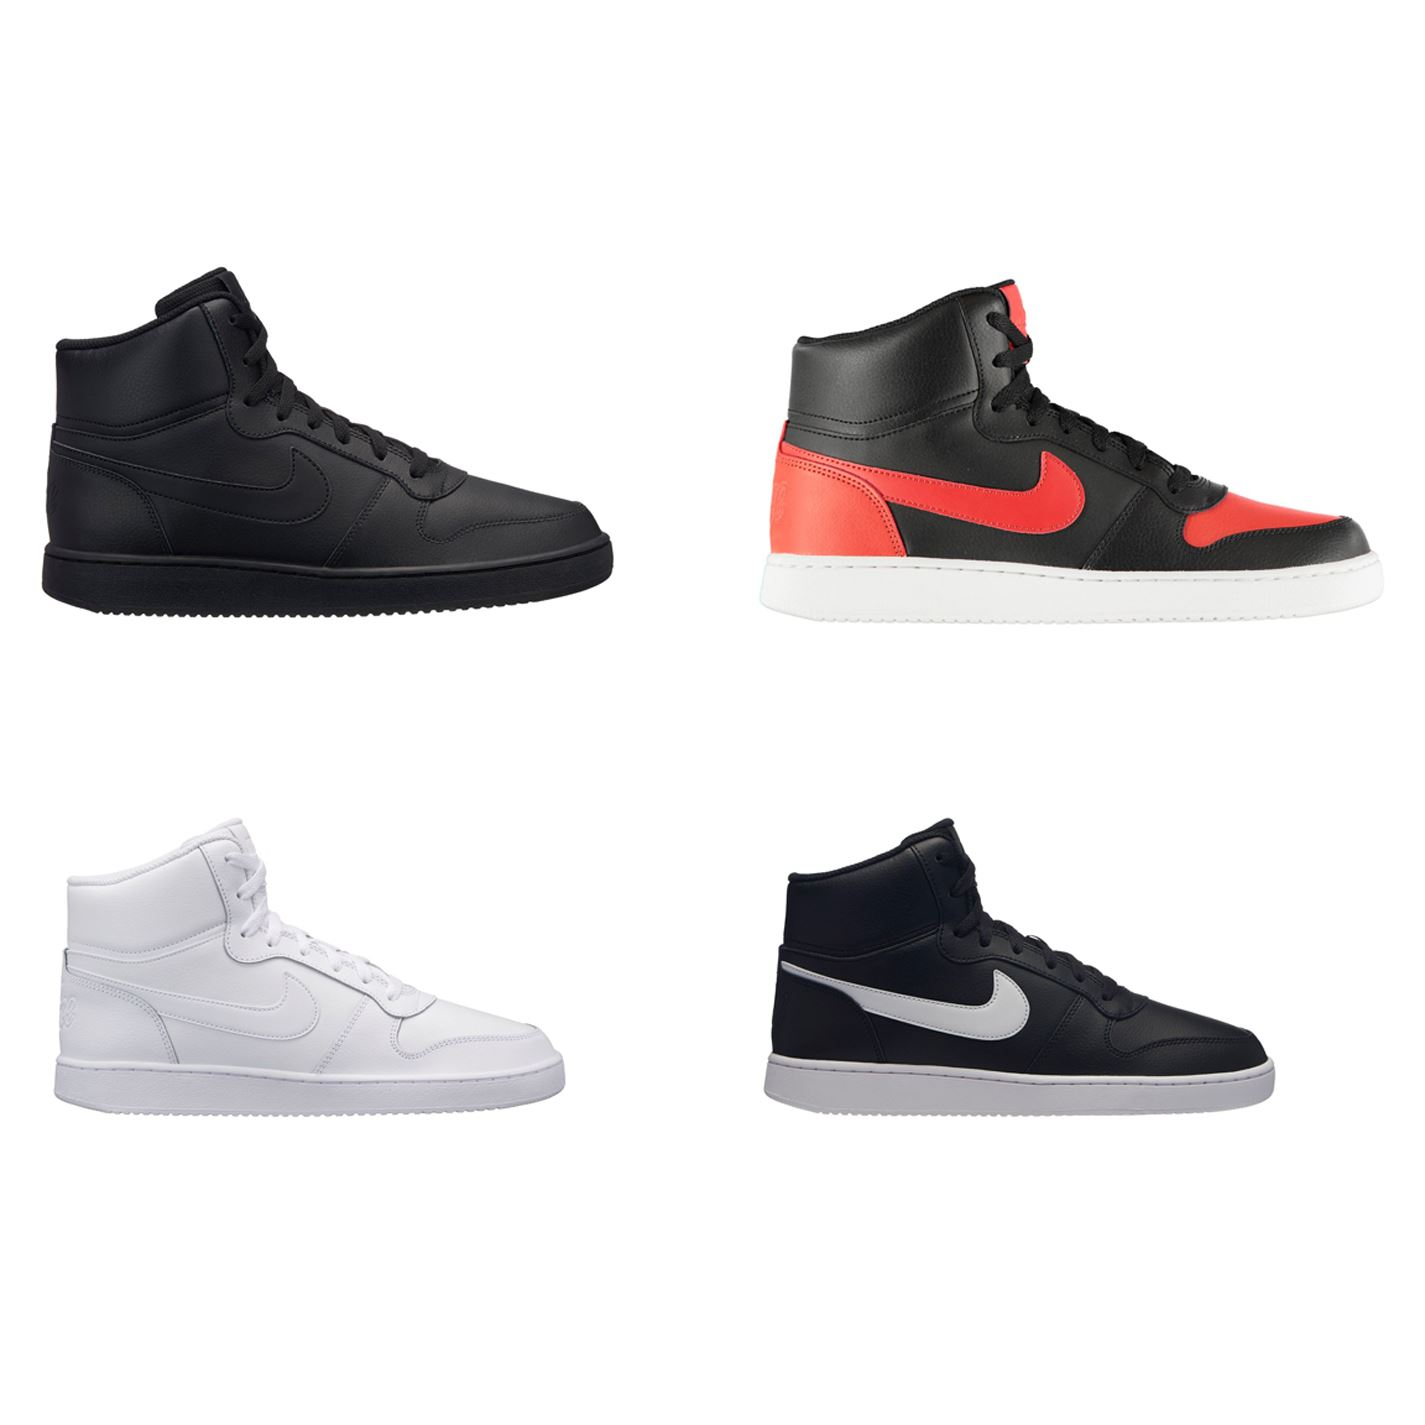 save off d6744 04ad0 Details about Nike Ebernon Mid Hi Top Trainers Mens Athleisure Footwear  Shoes Sneakers